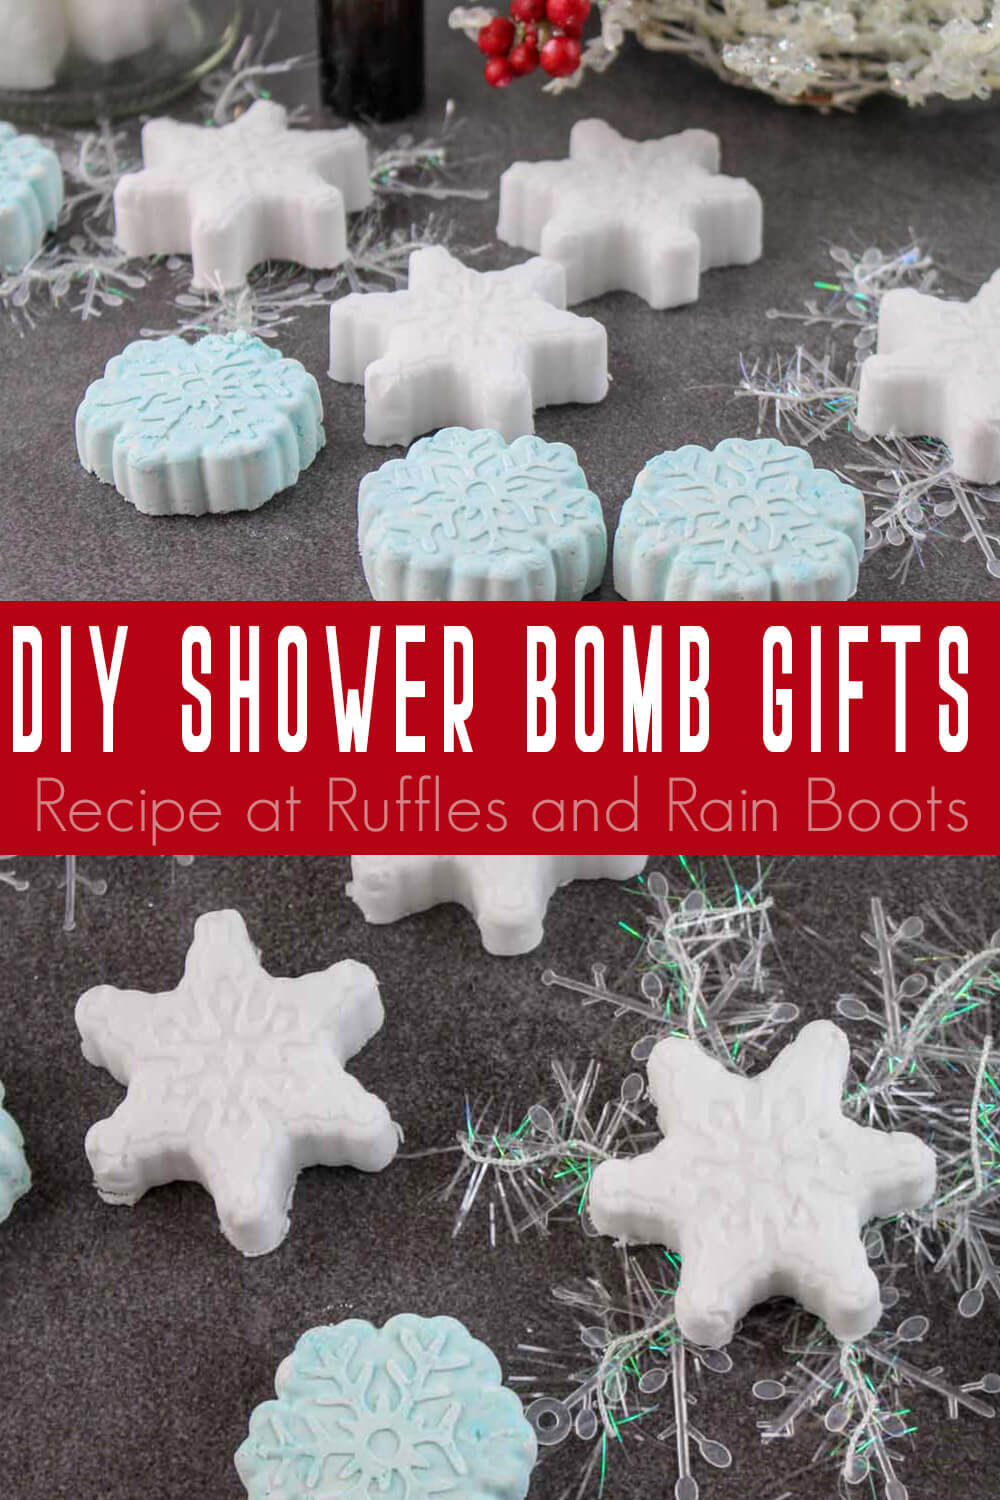 photo collage of diy shower bombs recipe gift idea with text which reads diy shower bomb gifts